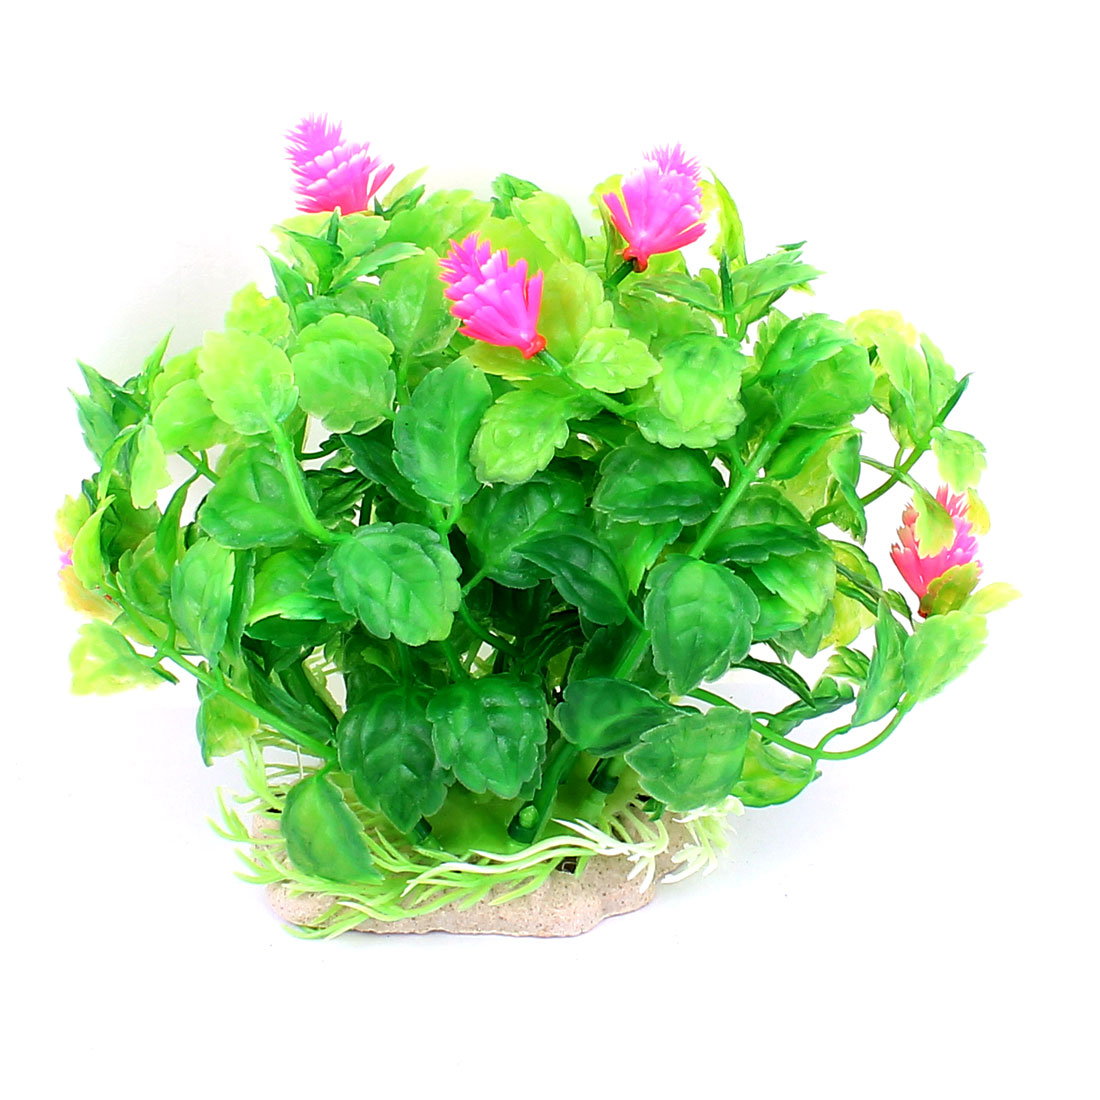 Plastic Underwater Aquatic Plant Fish Tank Aquarium Decor Green Pink